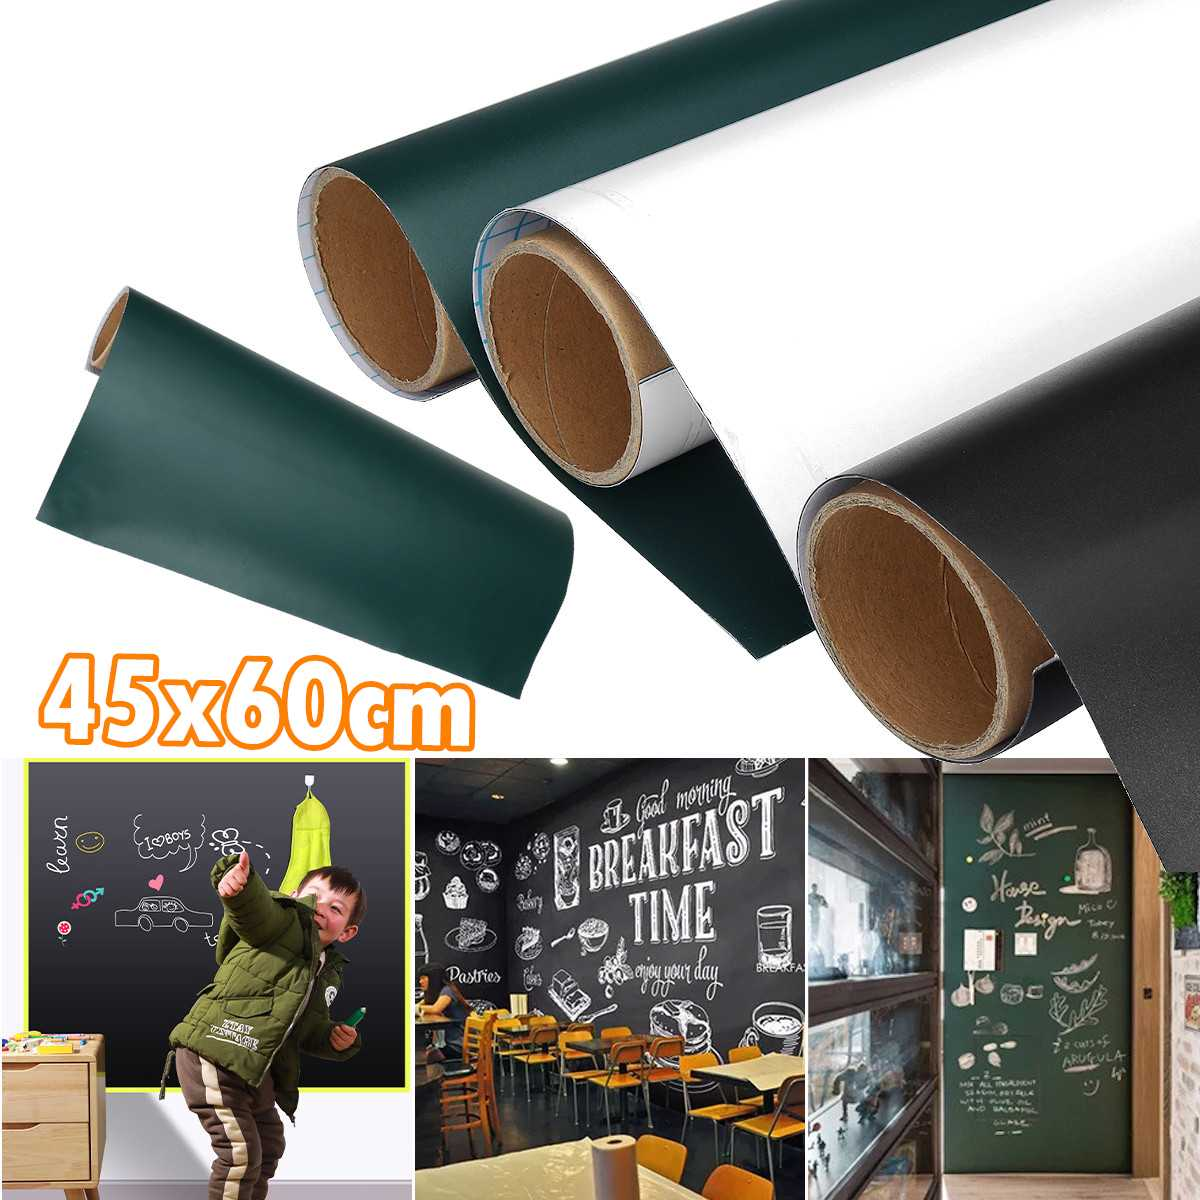 45x60cm Soft Magnetic Chalkboard Wall Stickers Removable Whiteboard Decals Great Learning Black Board Stickers For Office School